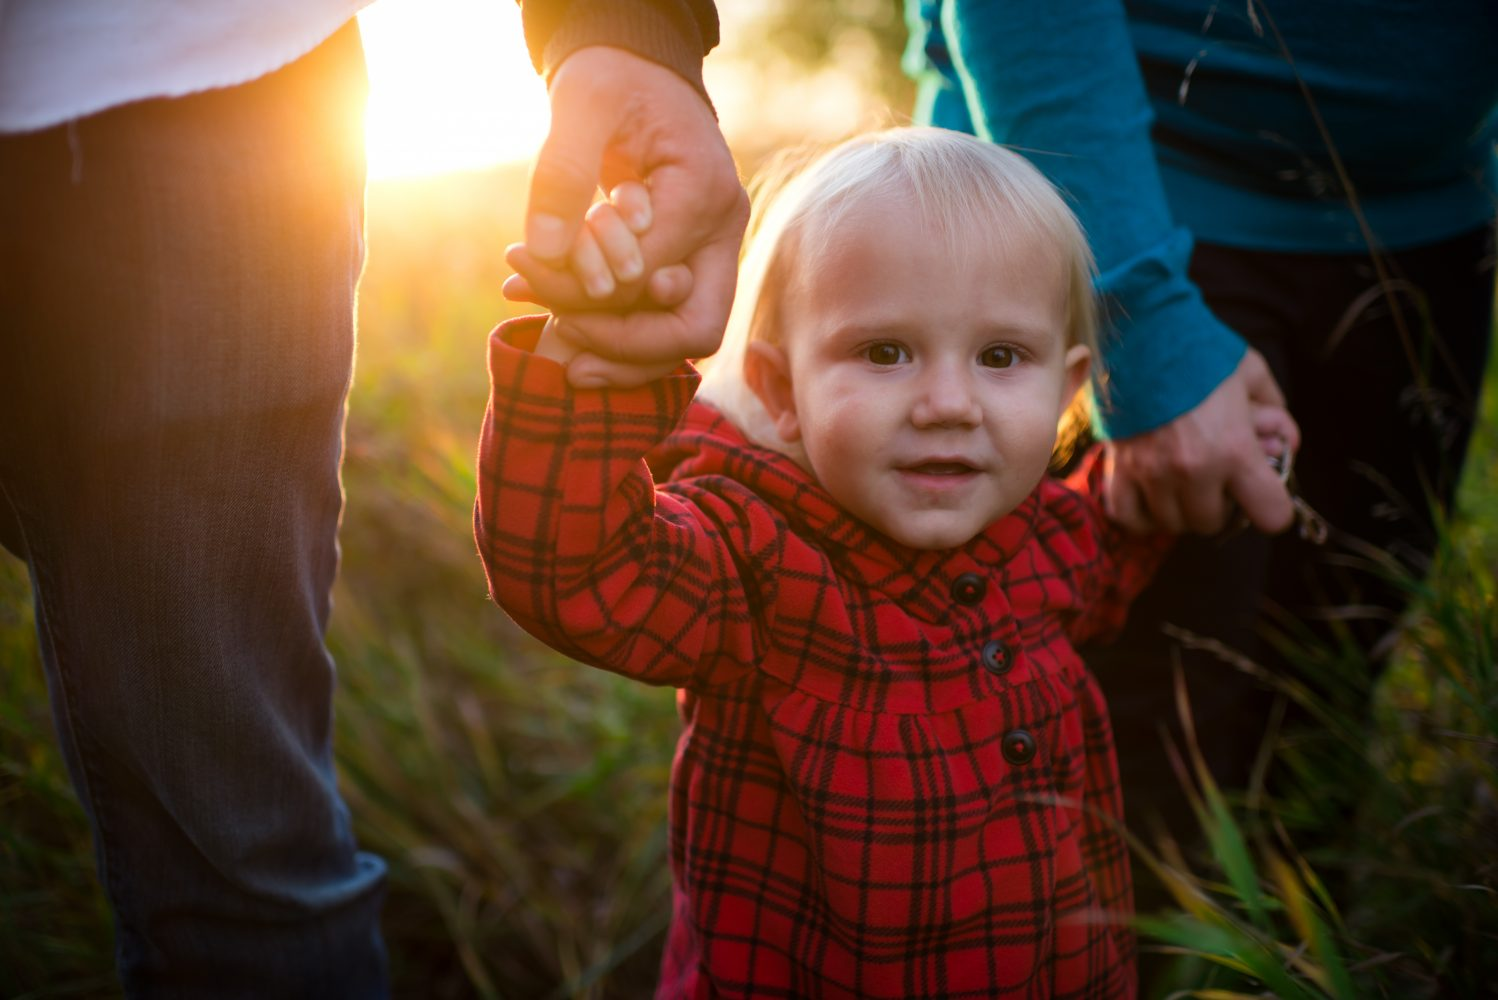 A sweet picture of a little girl and the beautiful golden hour light streaming in | 3haus Photographics